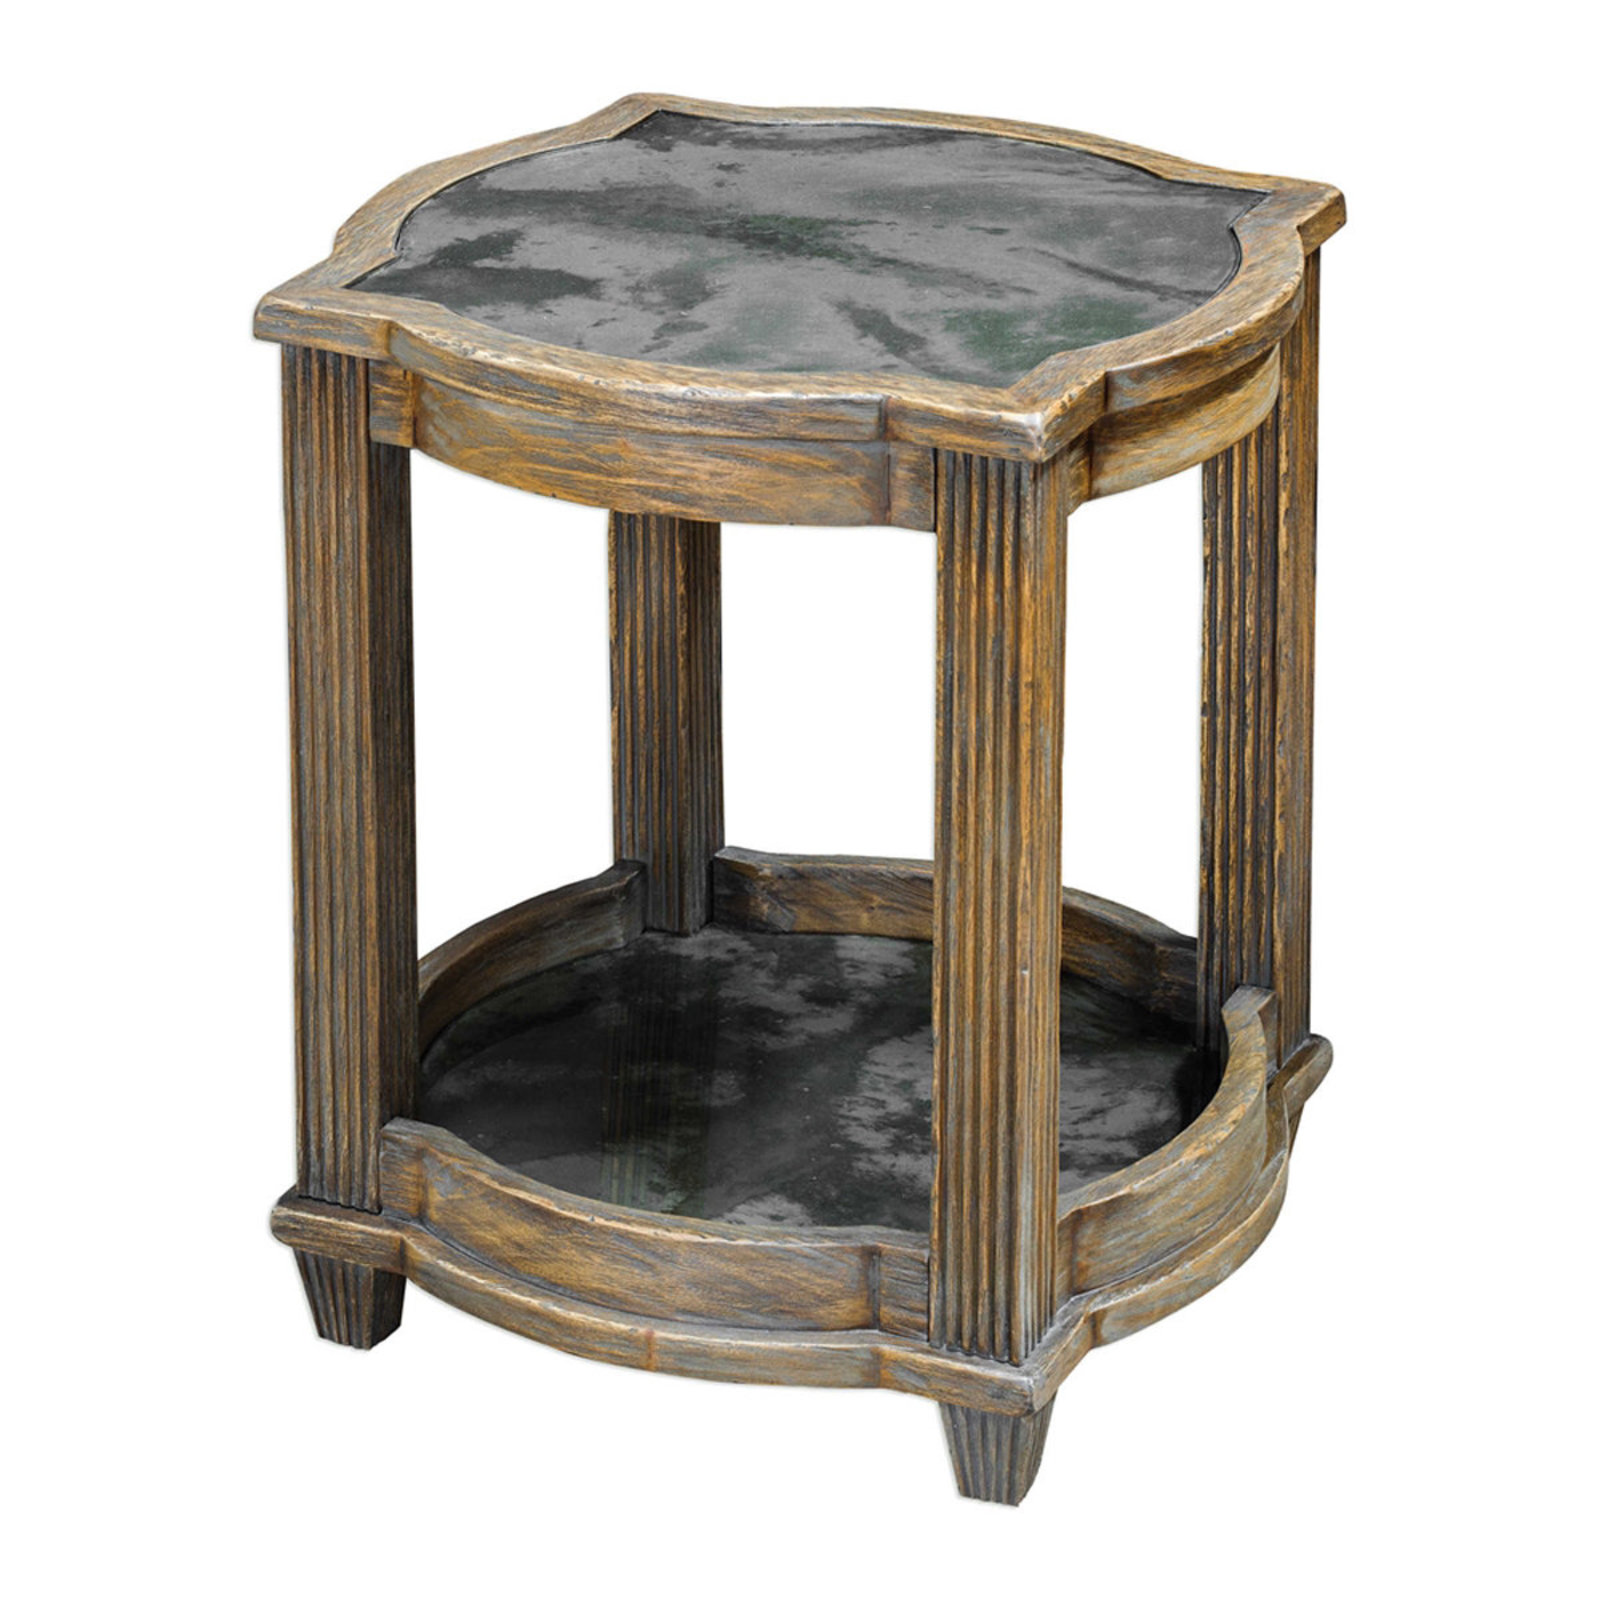 weathered wood quatrefoil accent table shades light oak stain gra antique marble top small dark console black and chairs grey bedside lights wall rustic blue end wide side stained